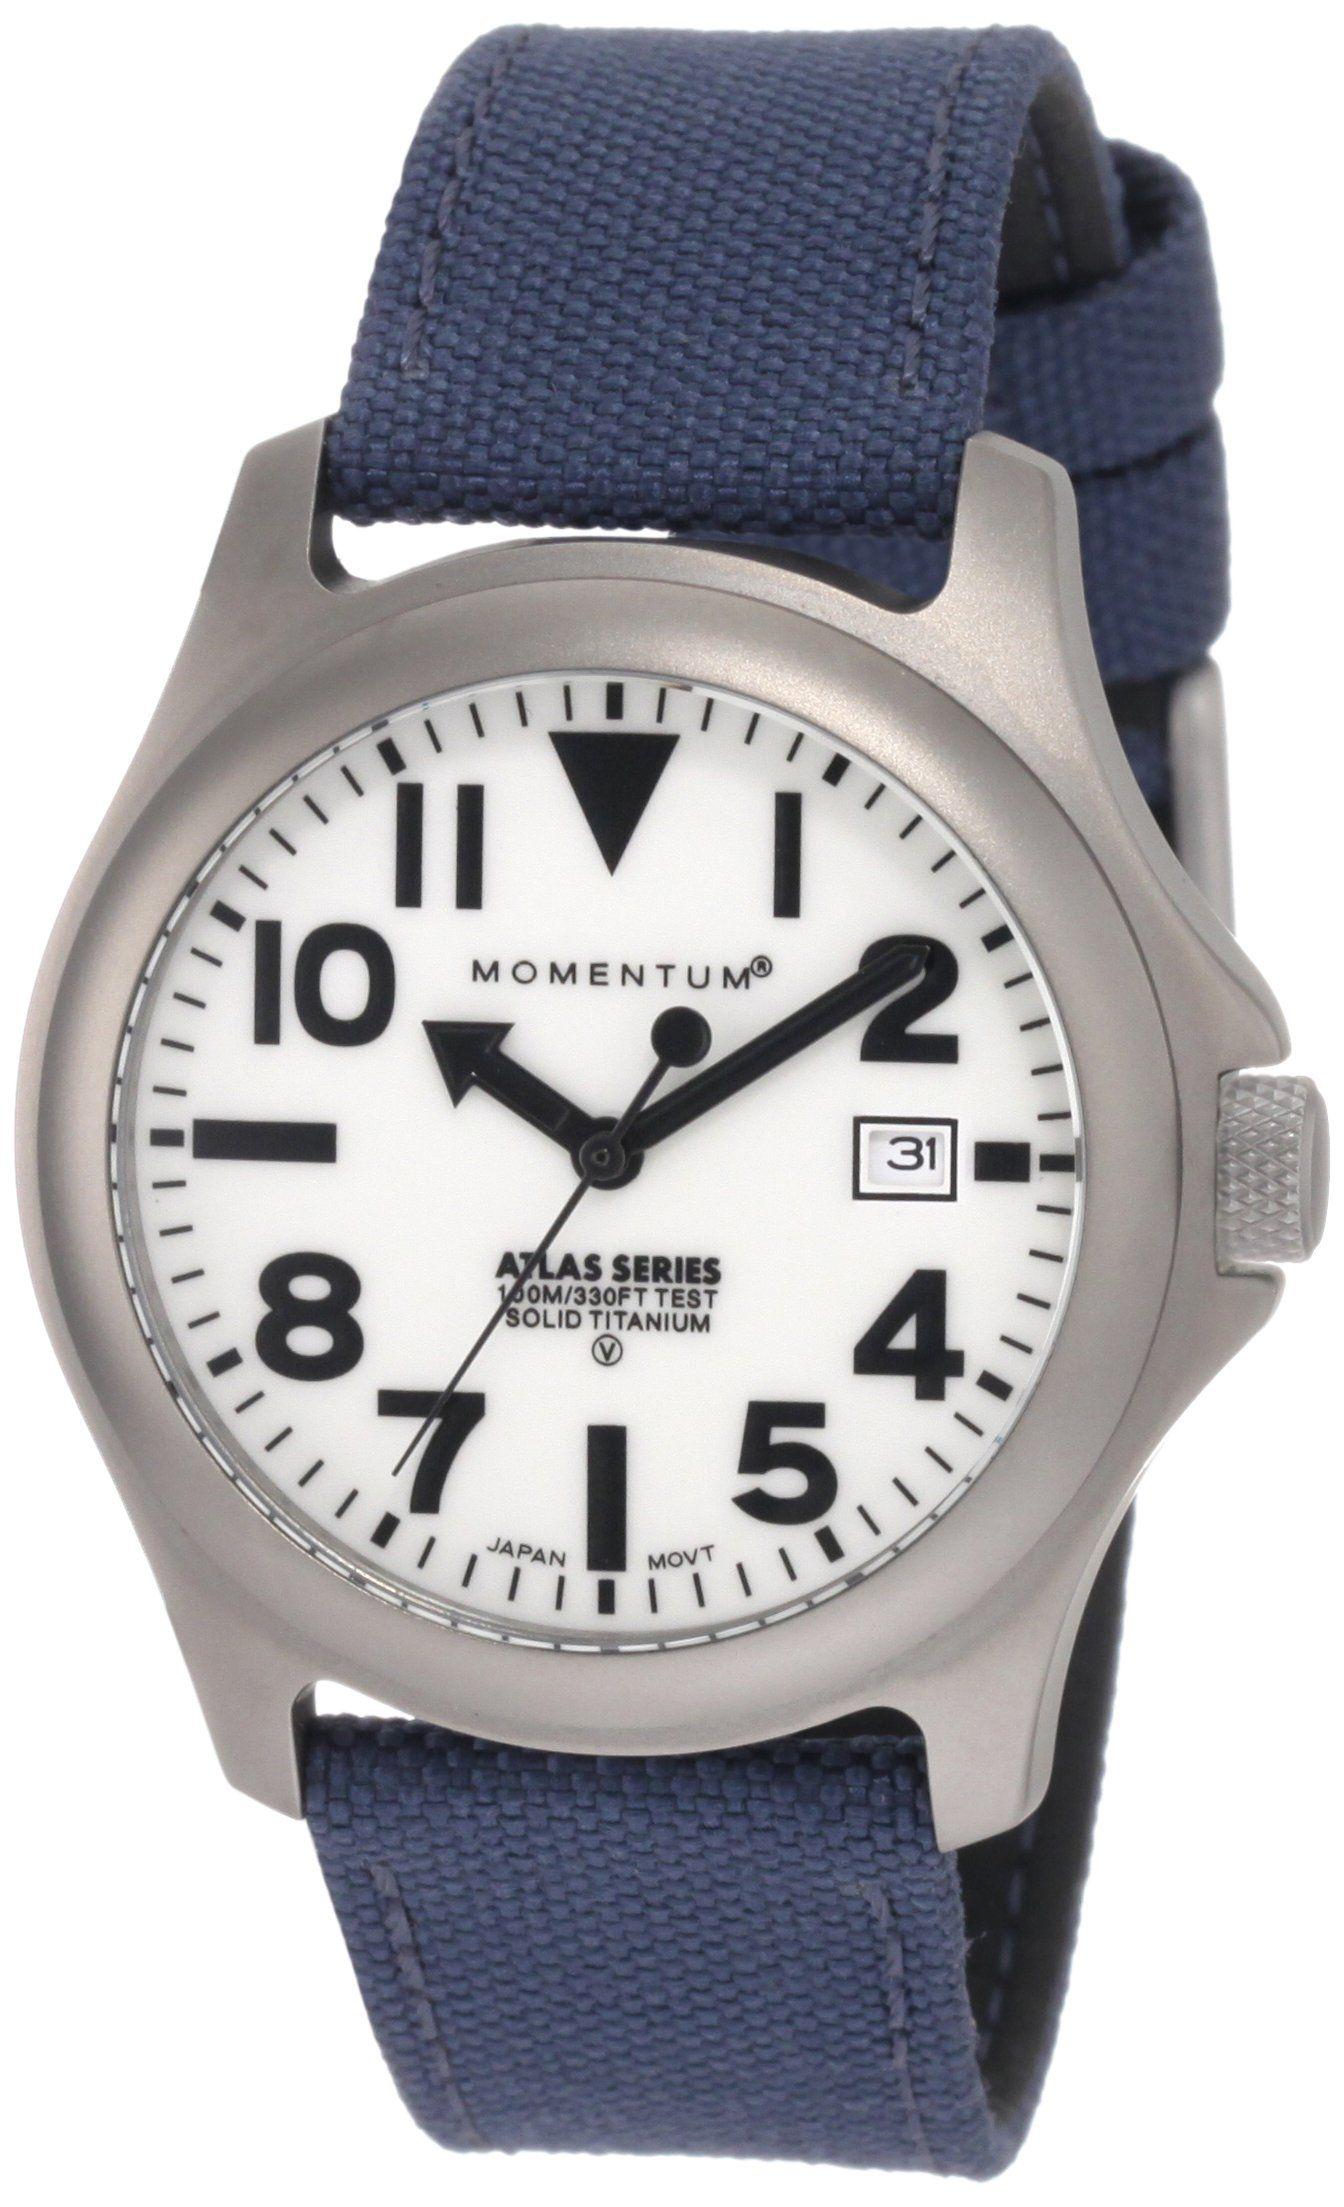 Momentum Men's 1M-SP00W6U Atlas White Dial Blue Cordura Watch. Quartz sports watch, solid titanium, luminous dial. Date feature, large numbers, screw crown. Matte-finish. Water-resistant to 330 feet (100 M). Water resistant to 330 feet (100 M): suitable for snorkeling, as well as swimming, but not diving.